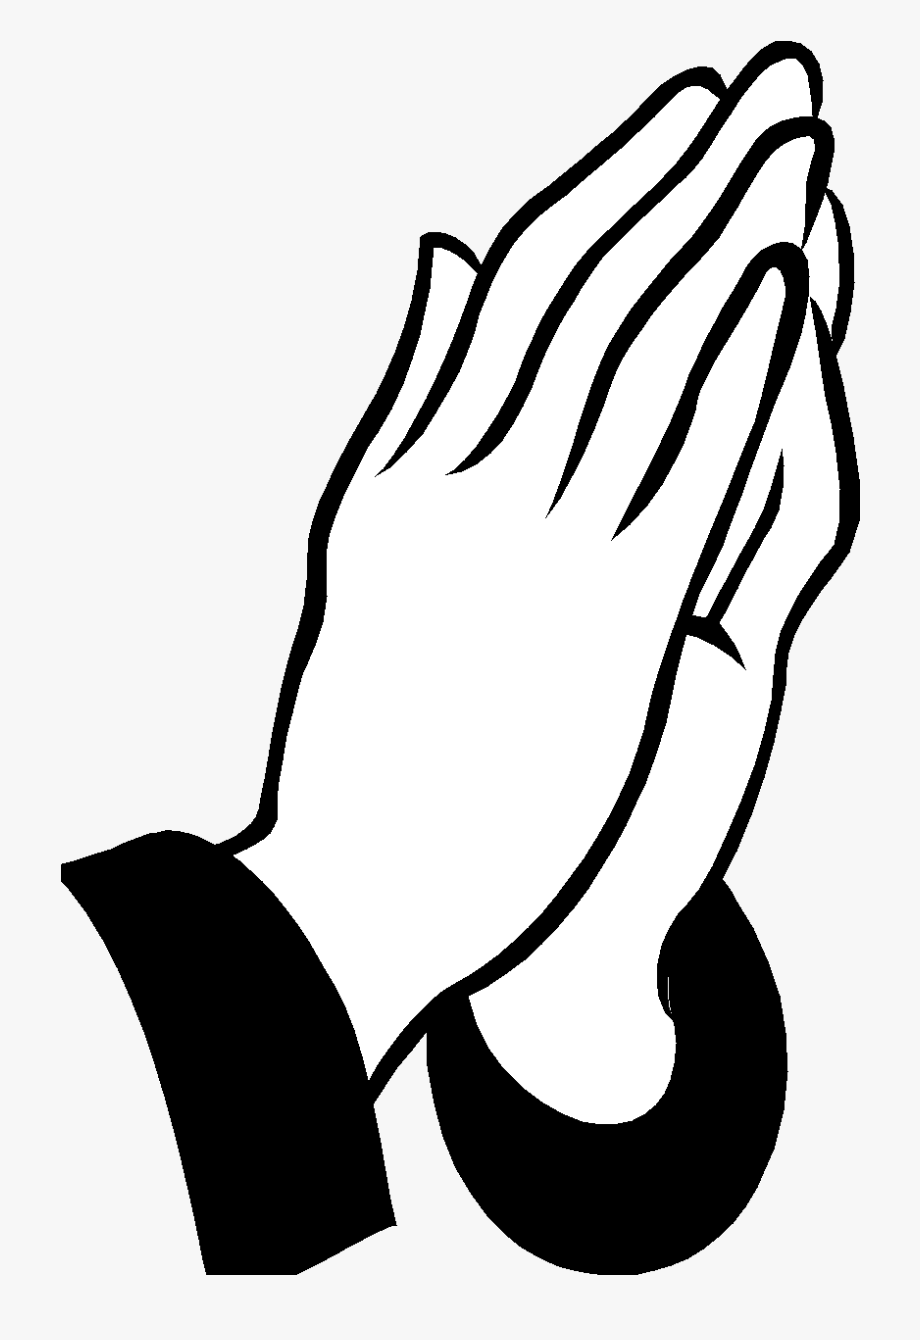 Royalty free black and white clipart vector free Royalty Free Download Jesus Black And White Clipart - Prayer ... vector free